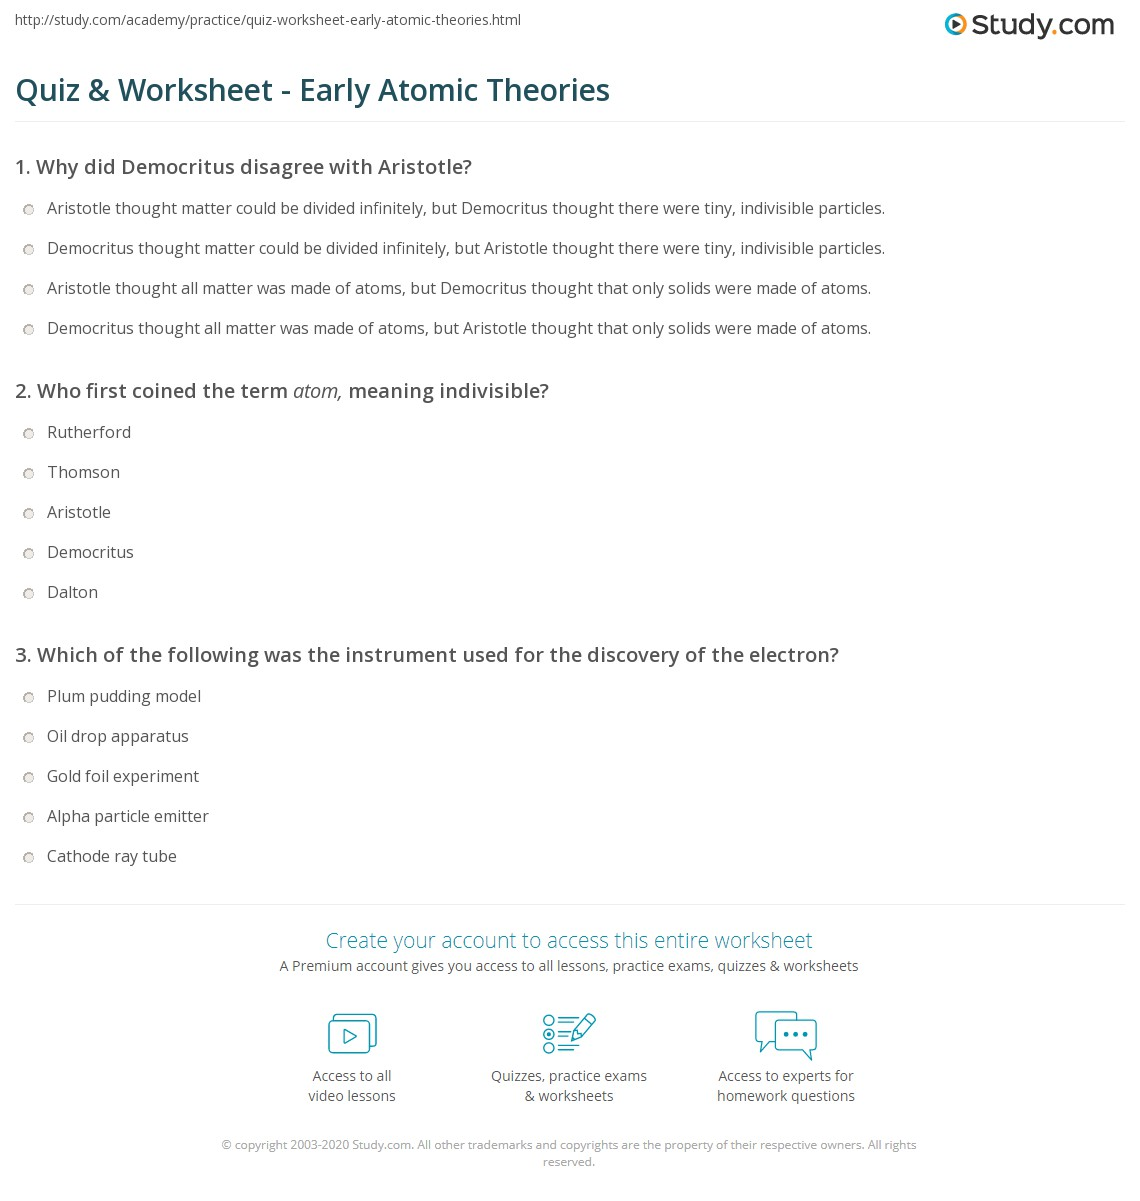 Quiz & Worksheet - Early Atomic Theories | Study.com